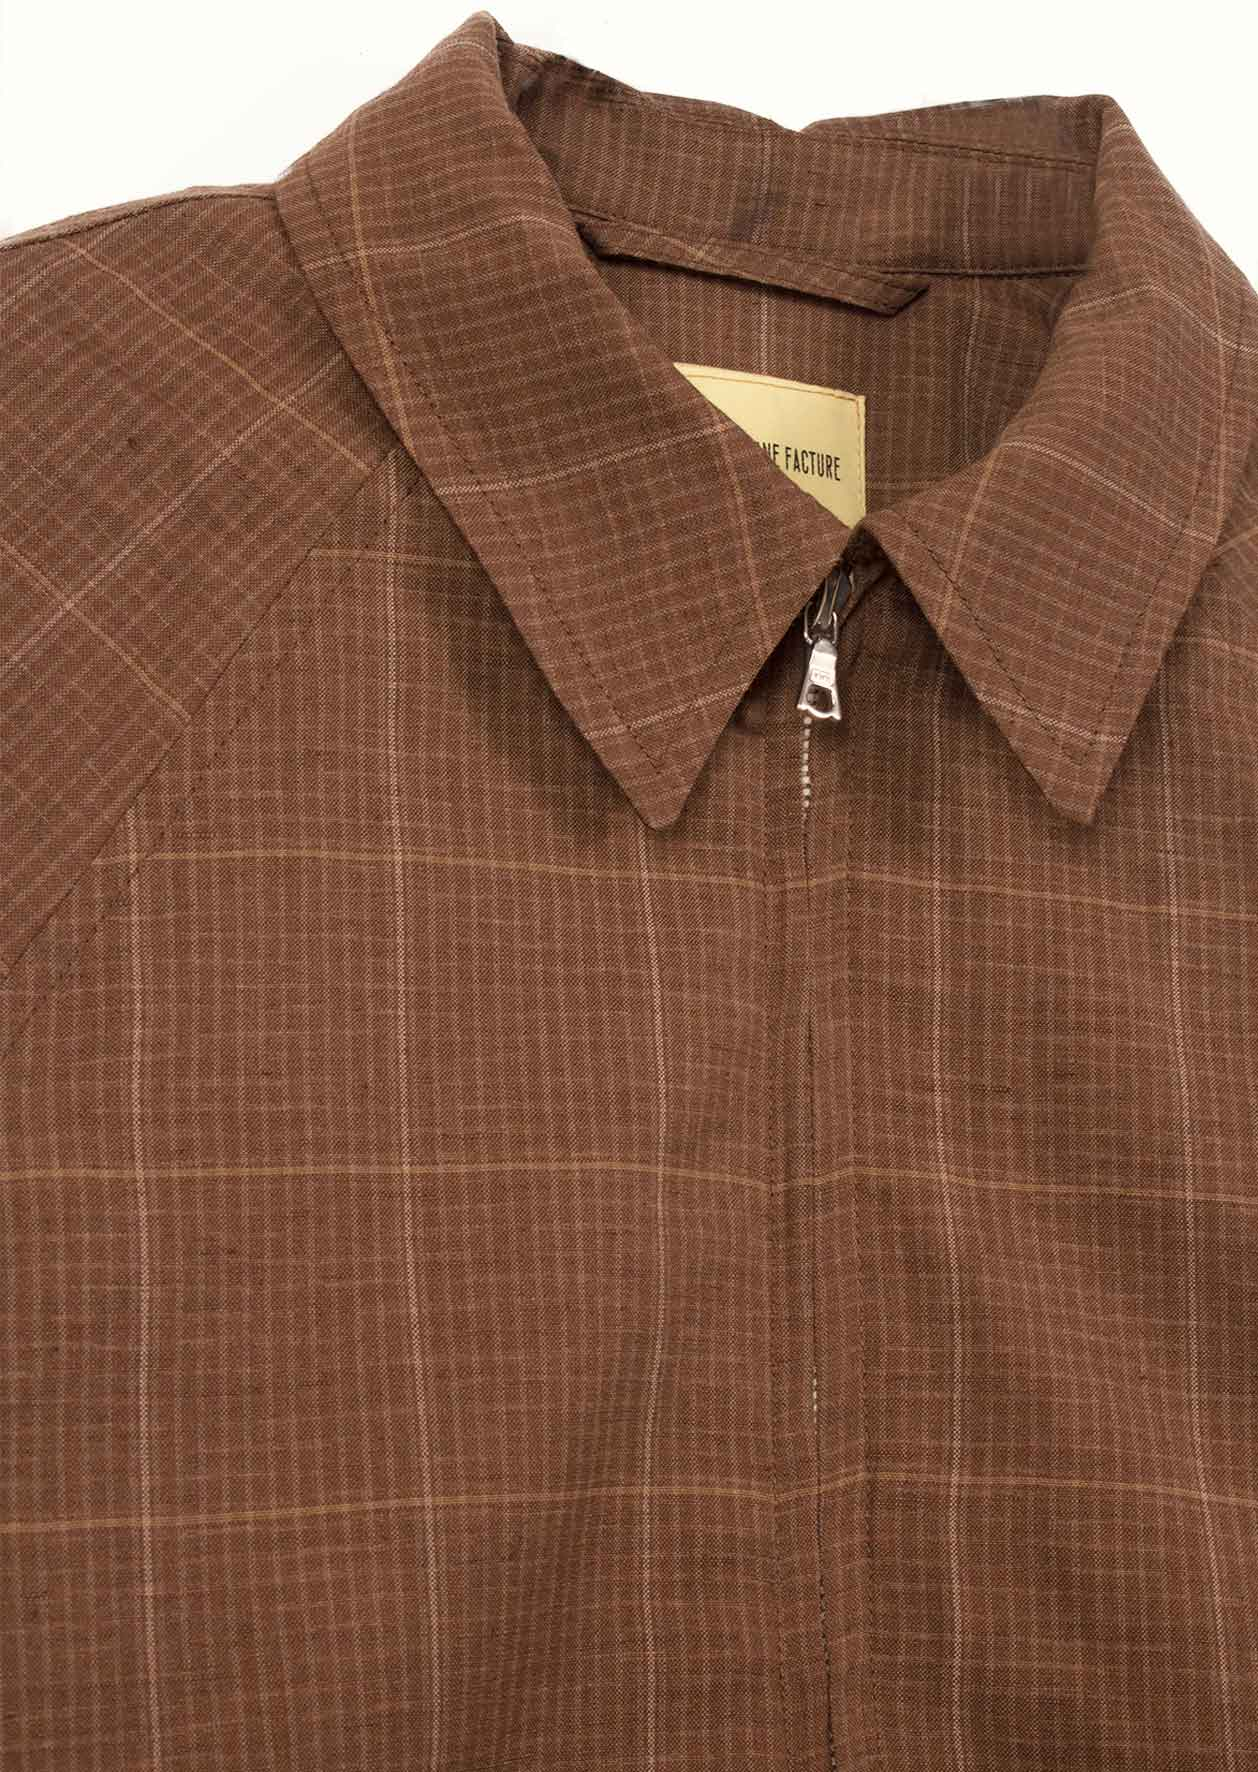 De Bonne Facture - Golf jacket - Washed wool & linen - Taupe checks